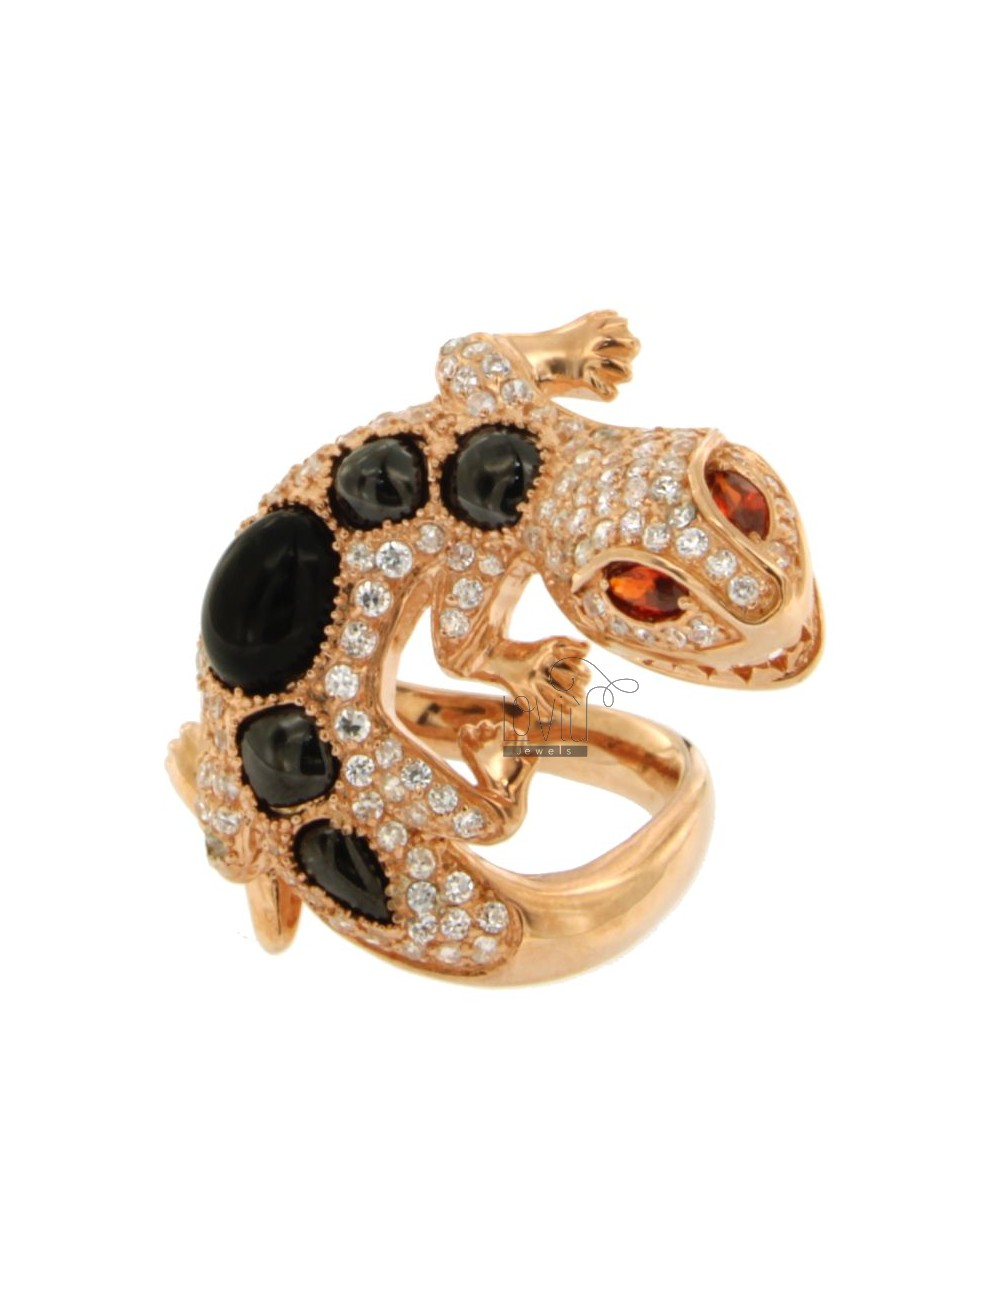 JECO AG RING IN ROSE GOLD PLATED 925 ‰ TIT WITH CABOCHON OF ONYX BLACK AND WHITE ZIRCONIA SIZE 16